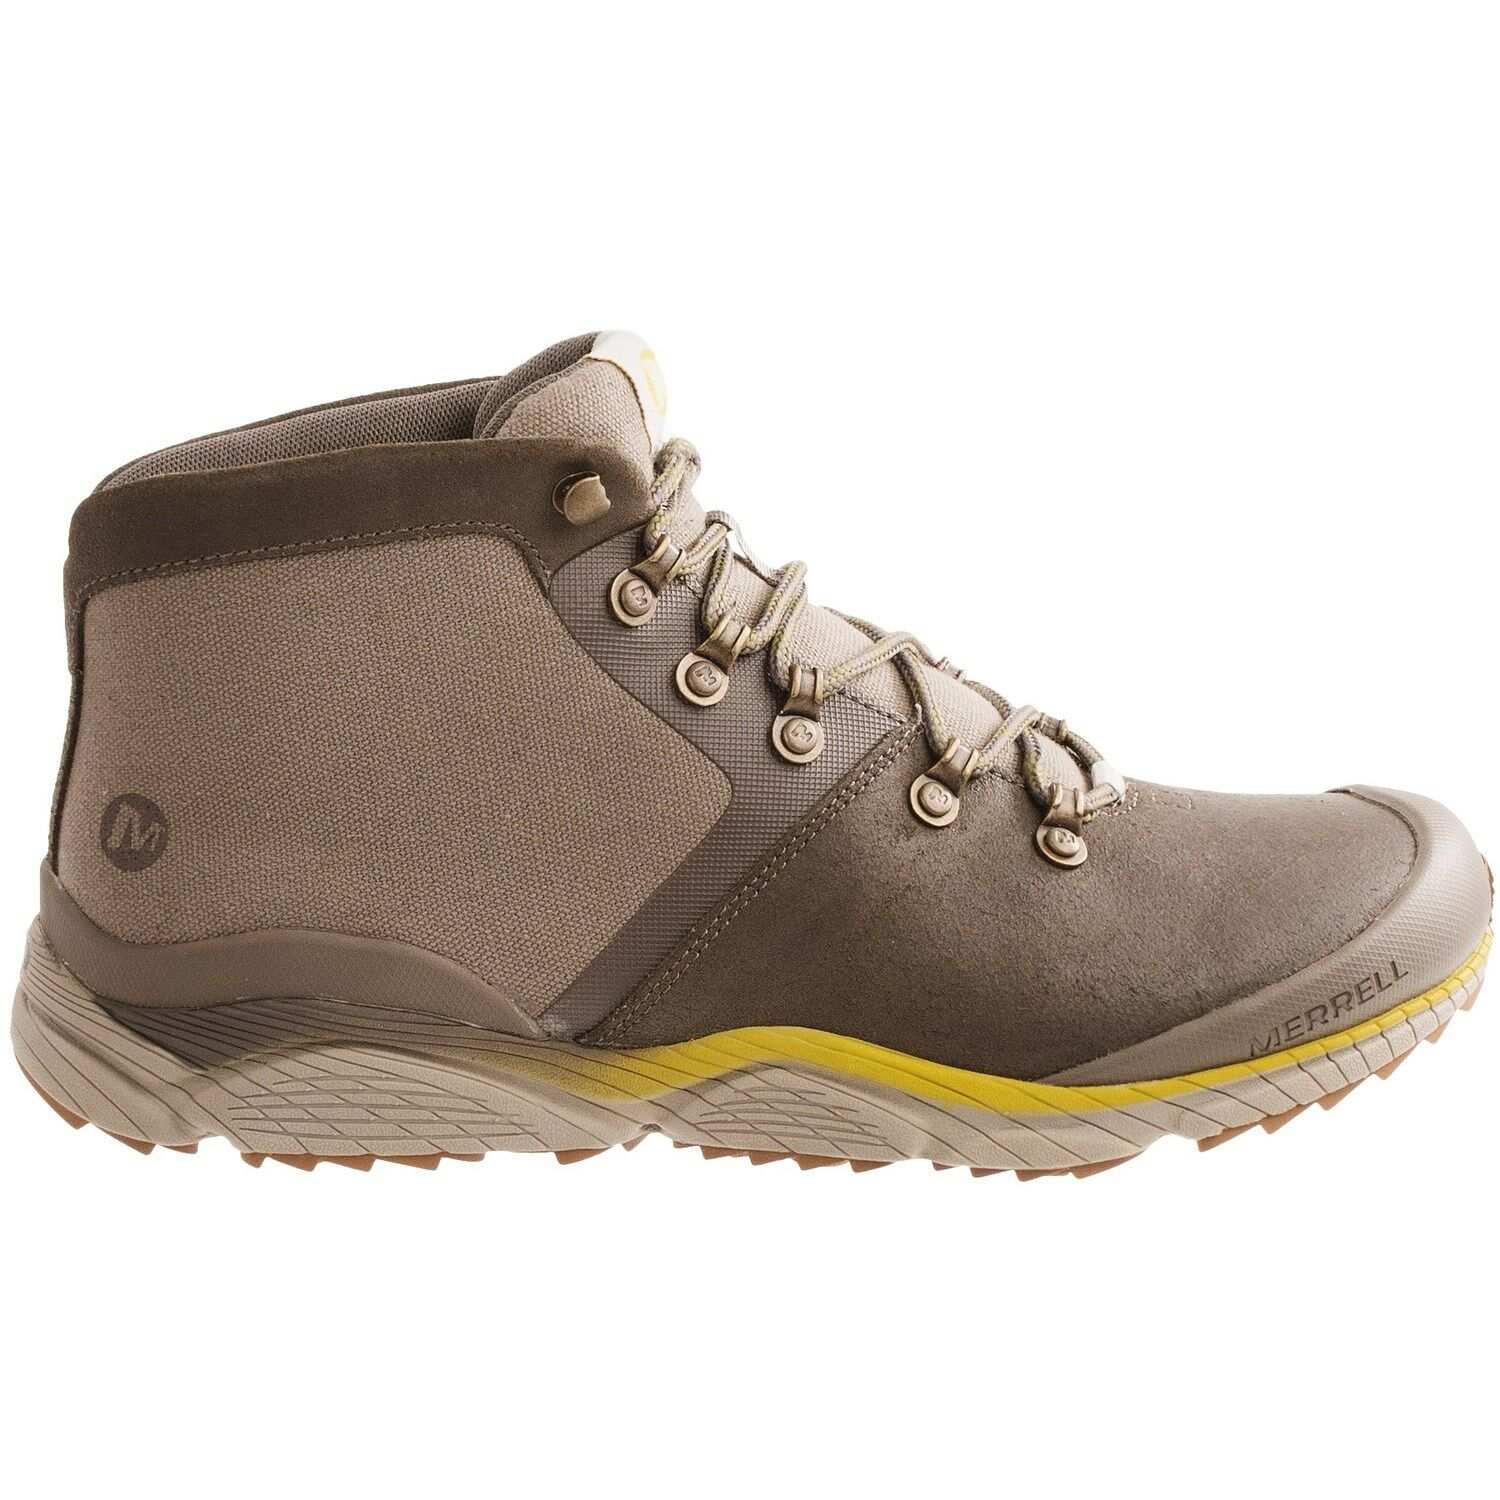 NIB MERRELL MEN ALL OUT DRIFT MID SUEDE LEATHER HIKING BOOTS 10 BOULDER BROWN